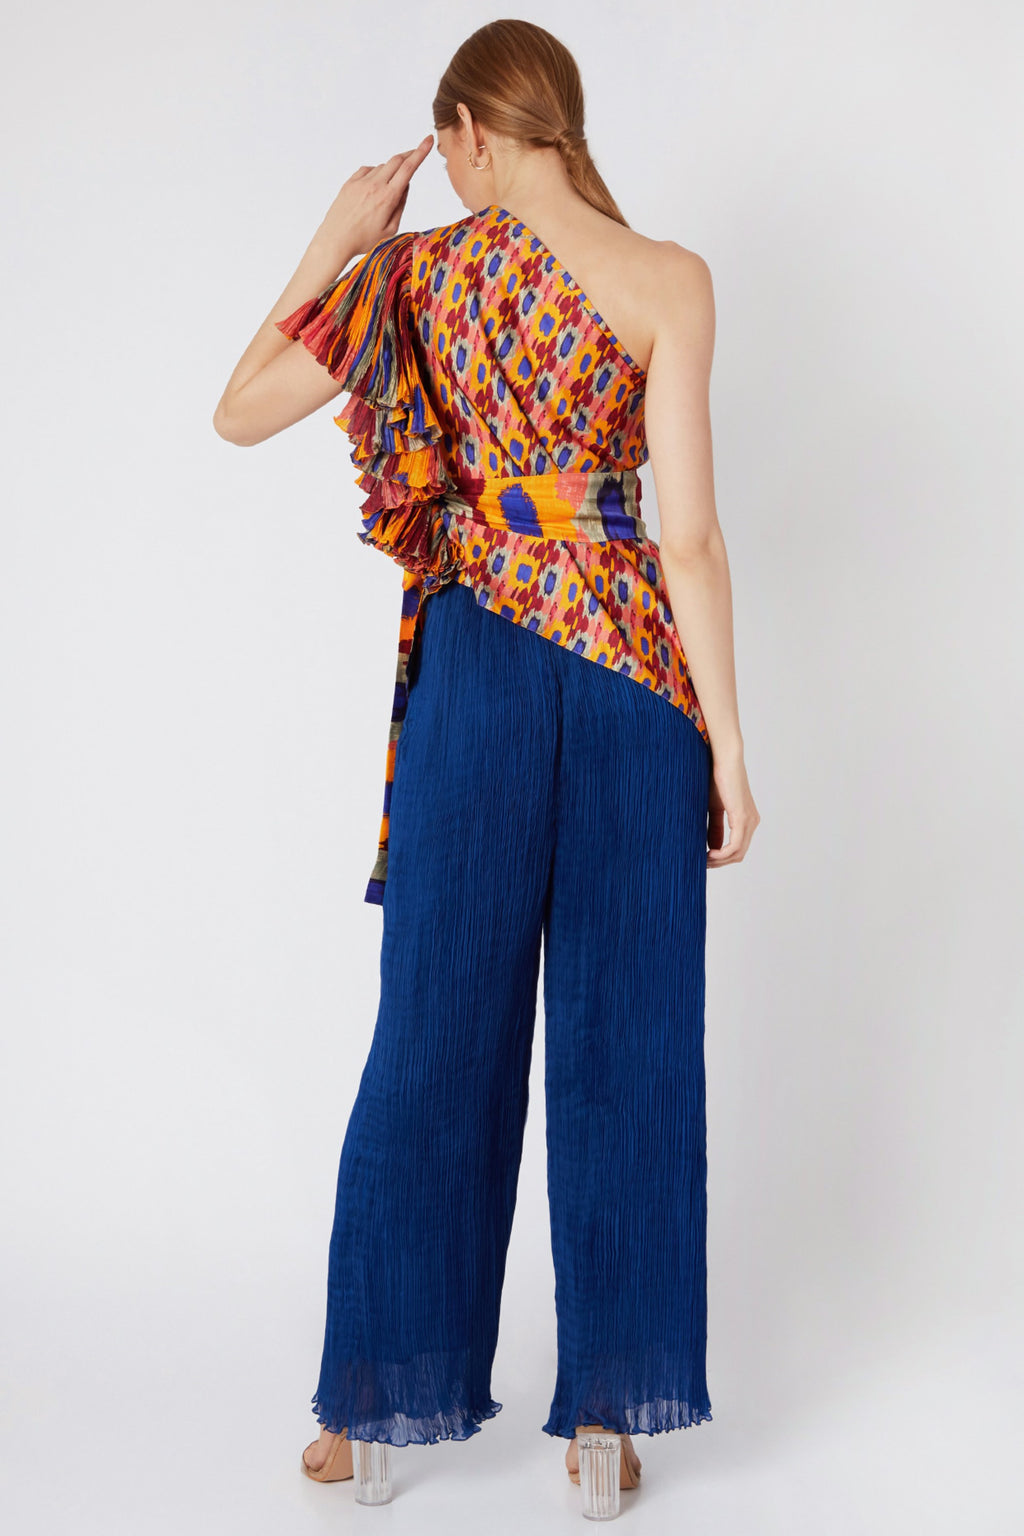 Saaksha & Kinni-Multi One Shoulder Blouse-INDIASPOPUP.COM